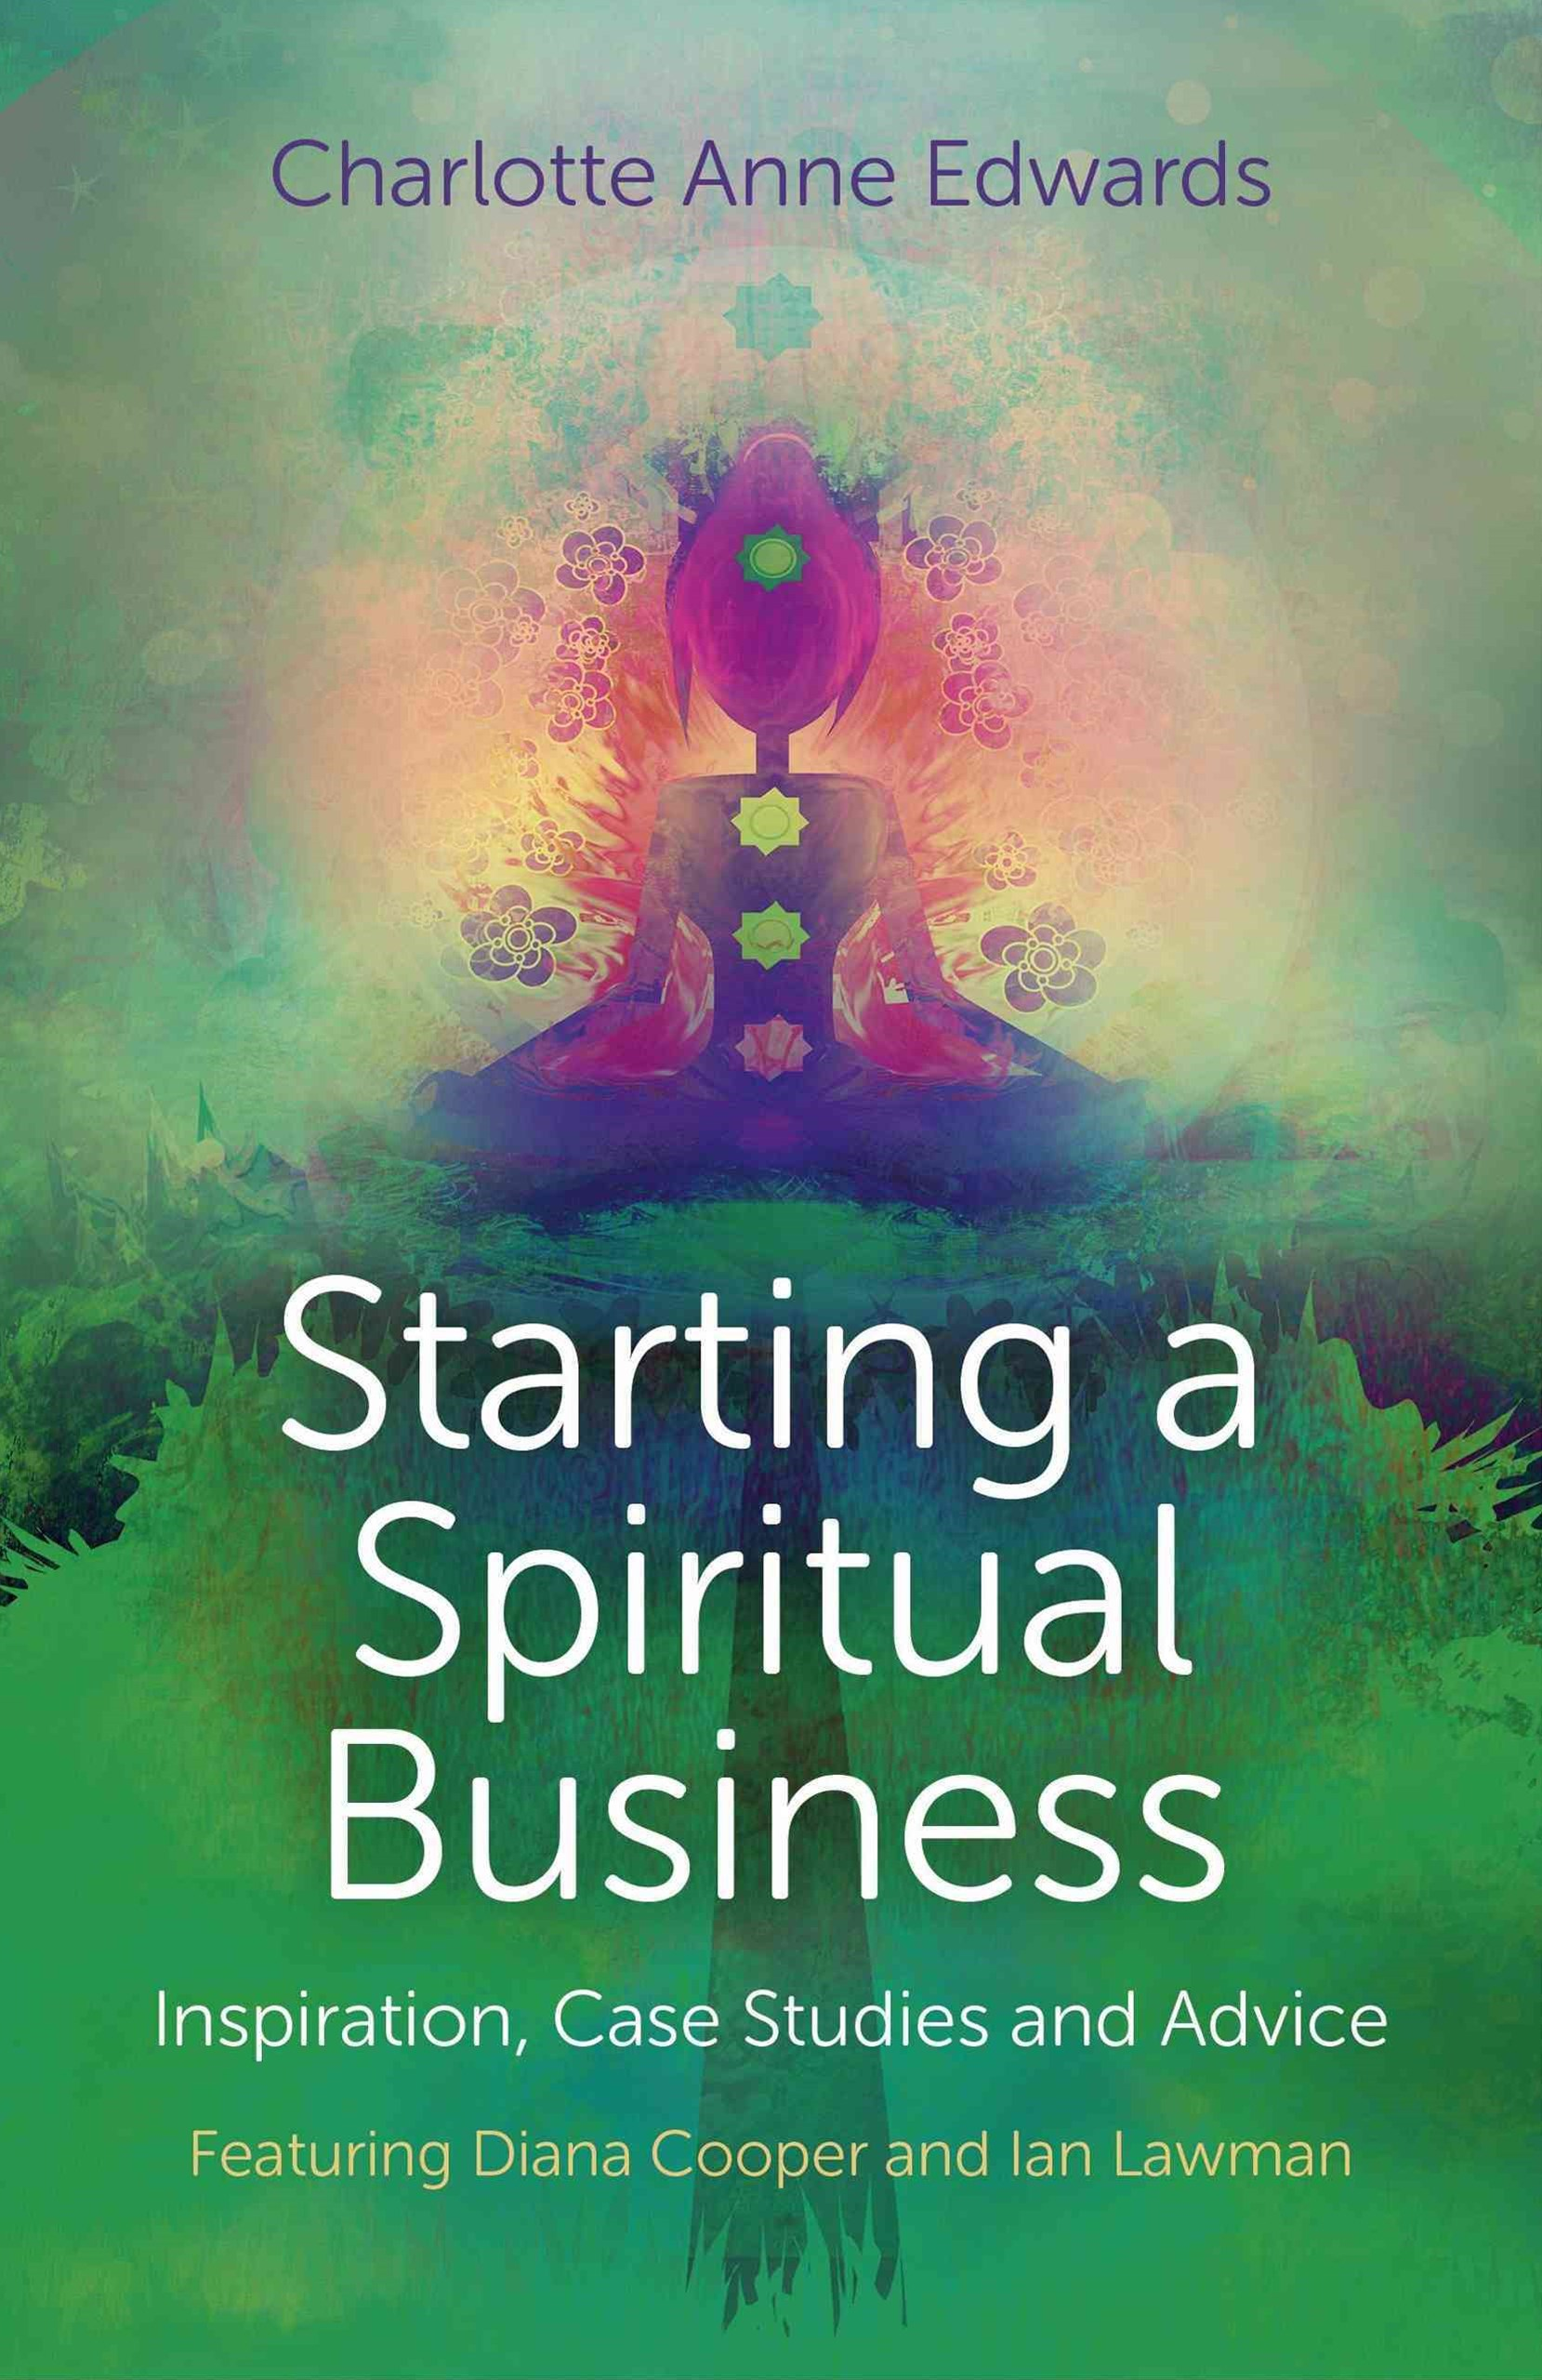 Starting a Spiritual Business - Inspiration, Case Studies and Advice